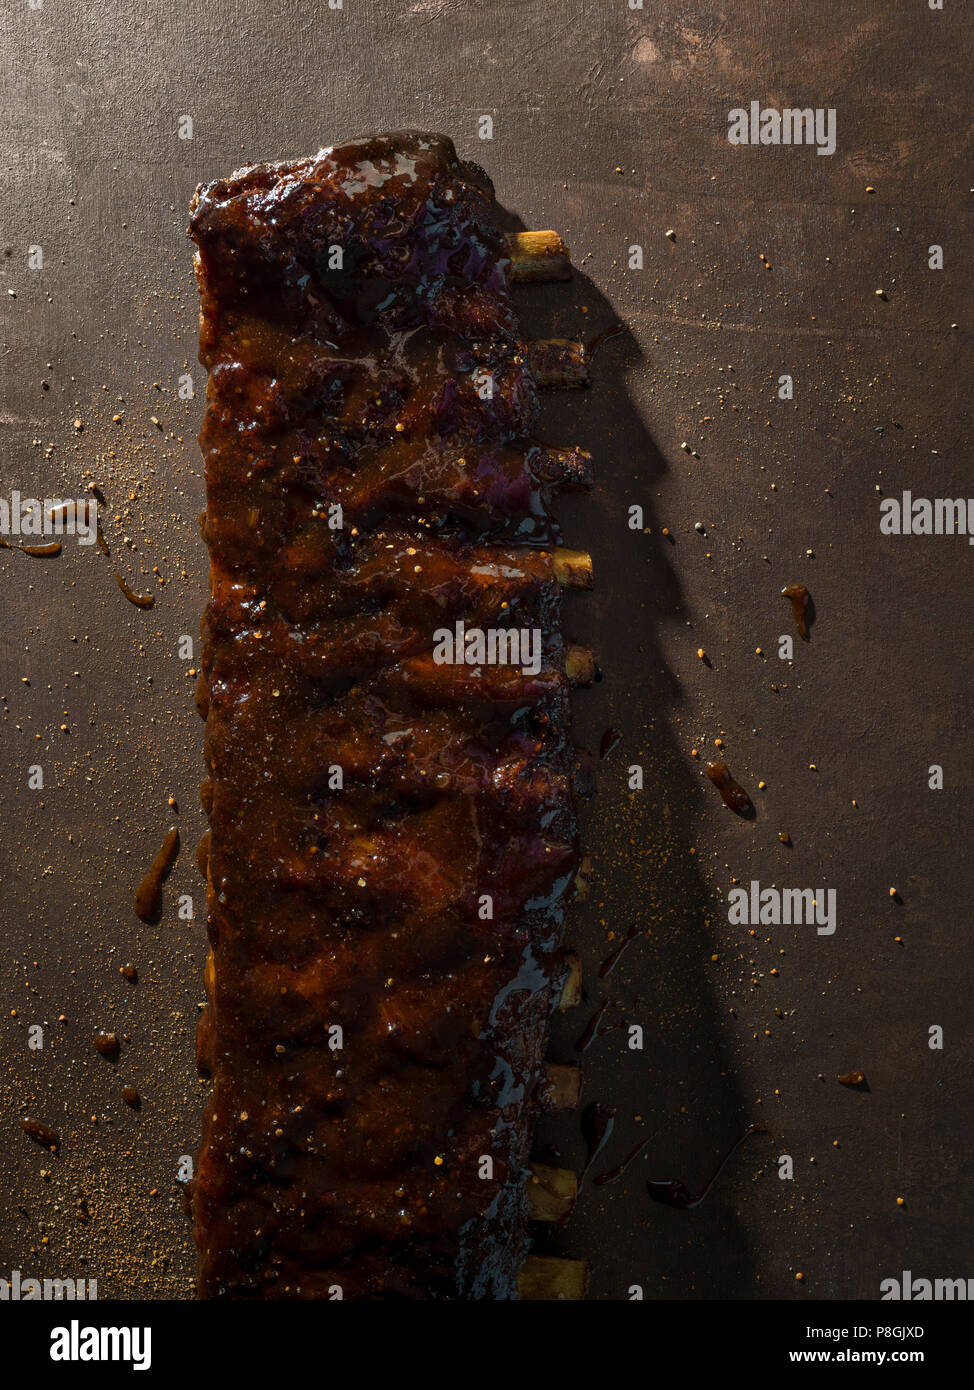 A long rack of ribs covered in sauce and seasonings on a brown surface with messy sprinkled spices around. - Stock Image